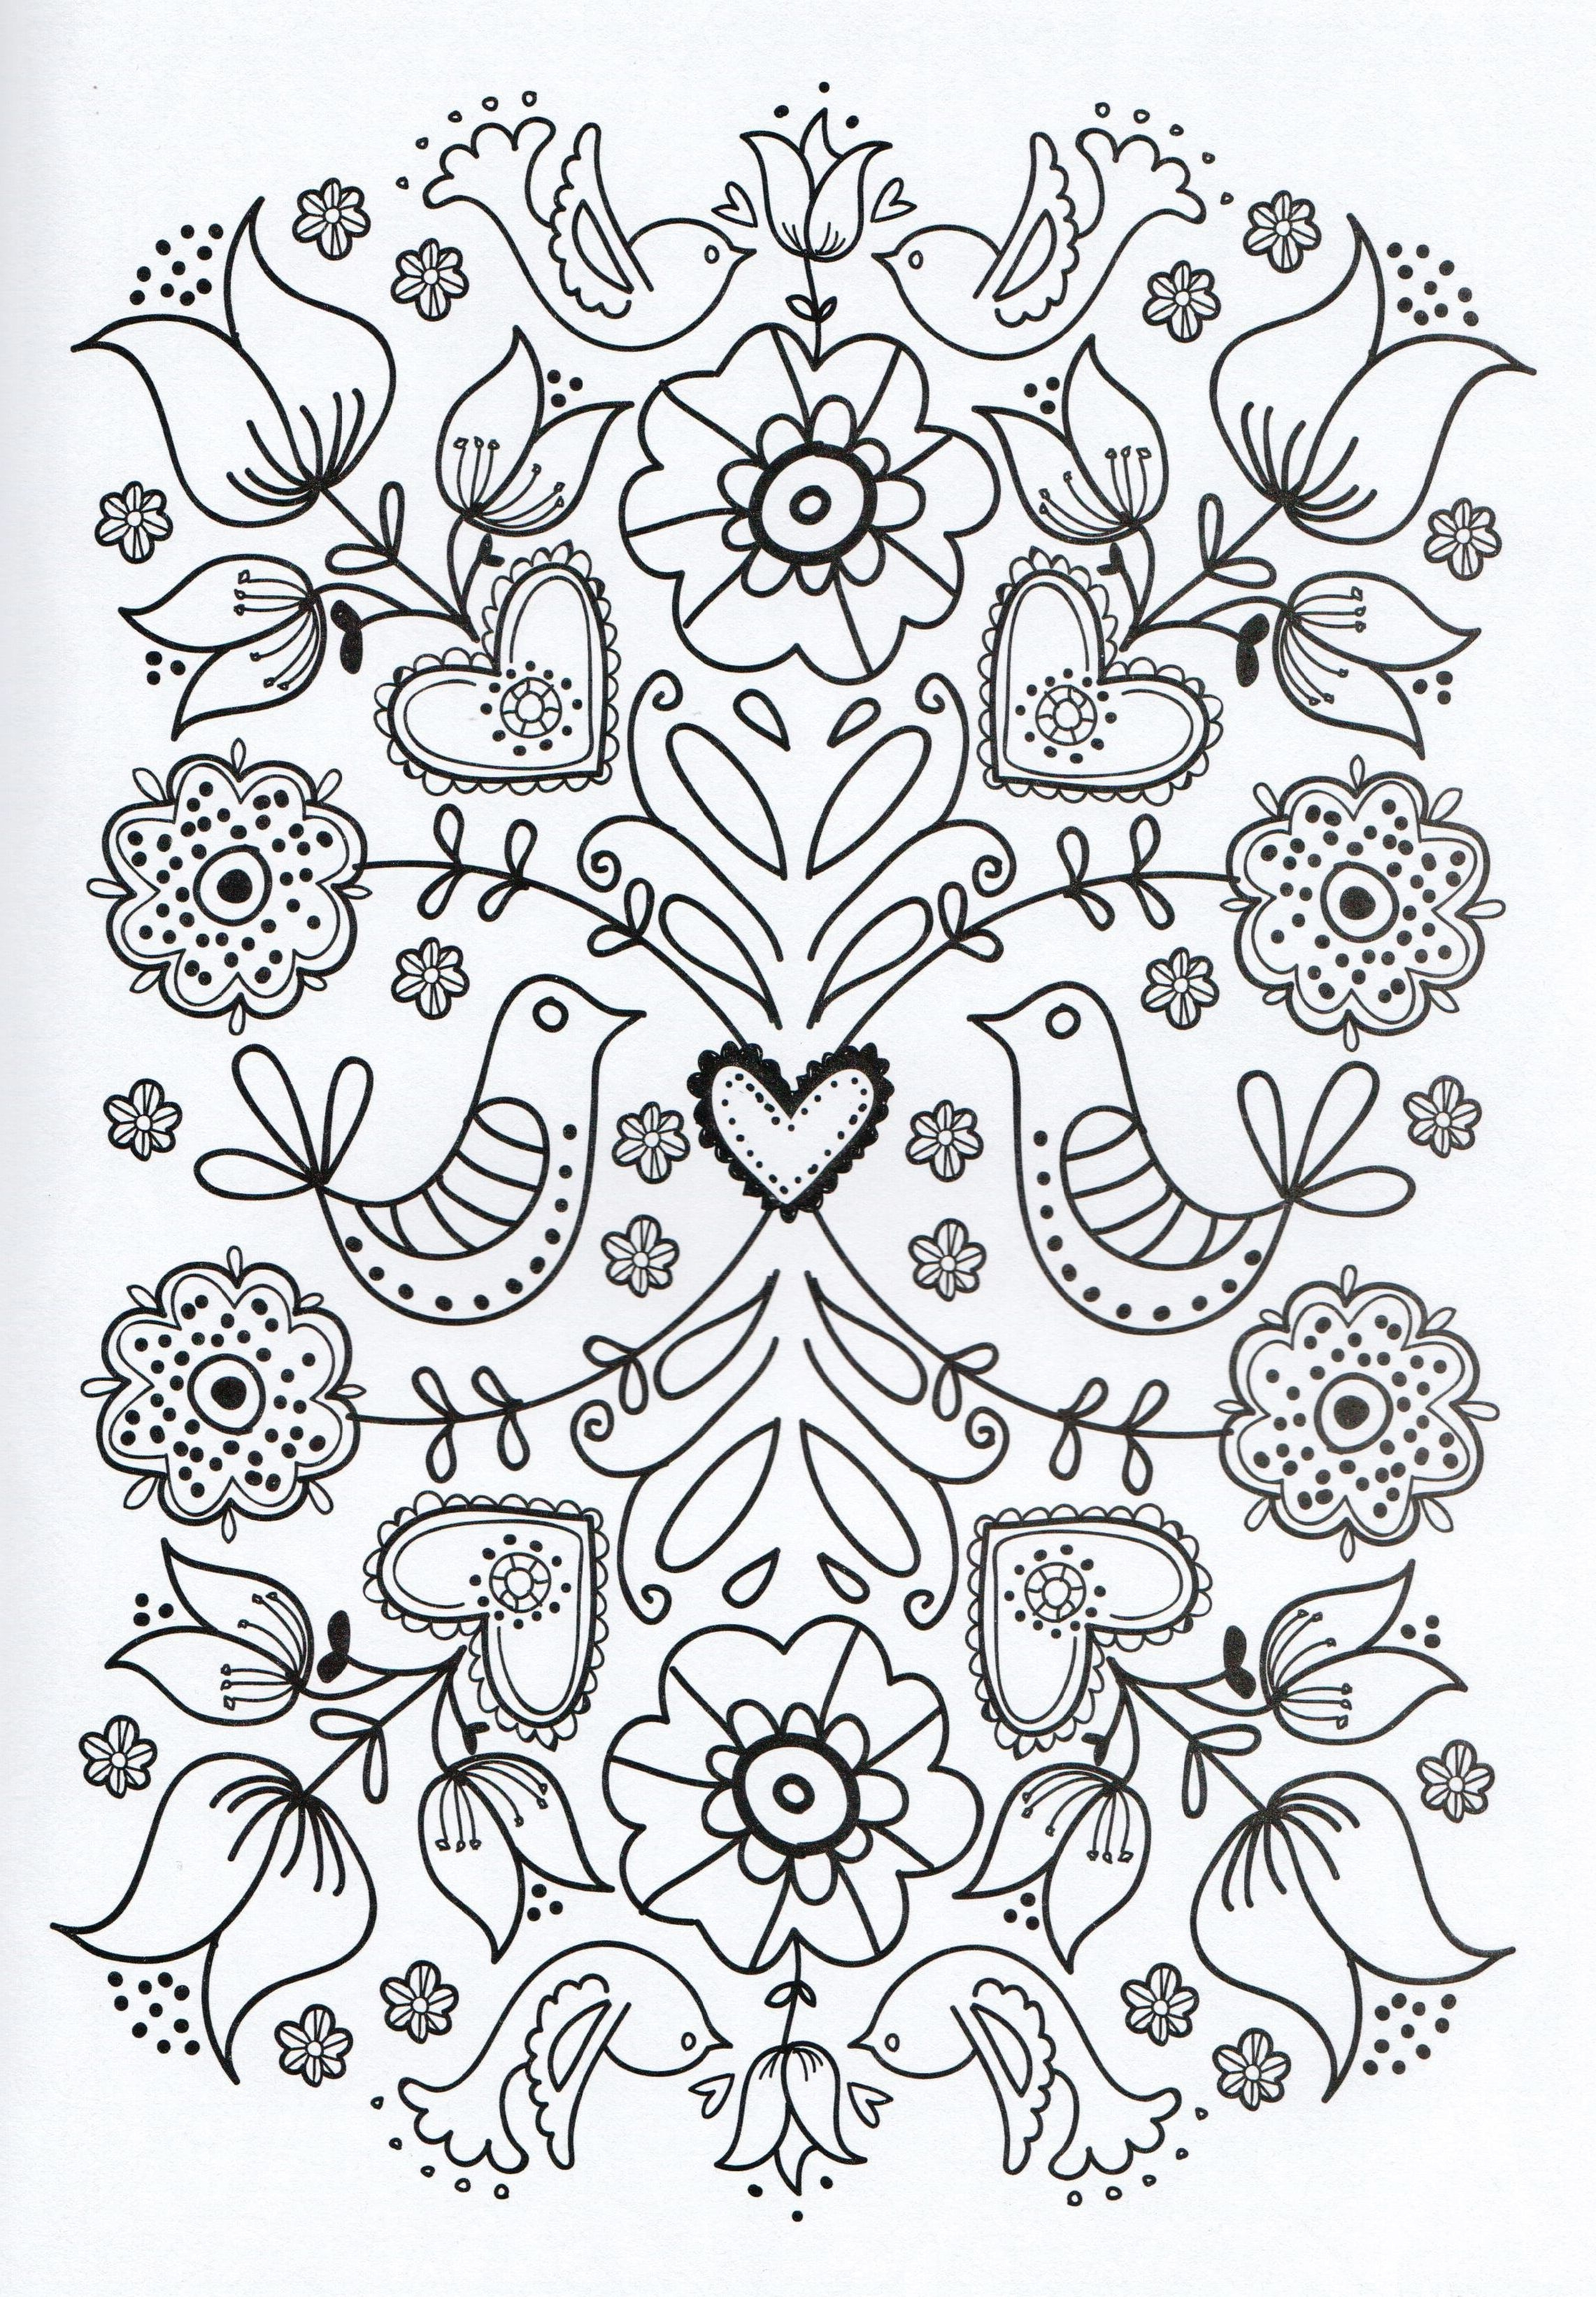 Simple Adult Coloring Pages - 10 Simple & Useful Mother's Day Gifts to Diy or Buy